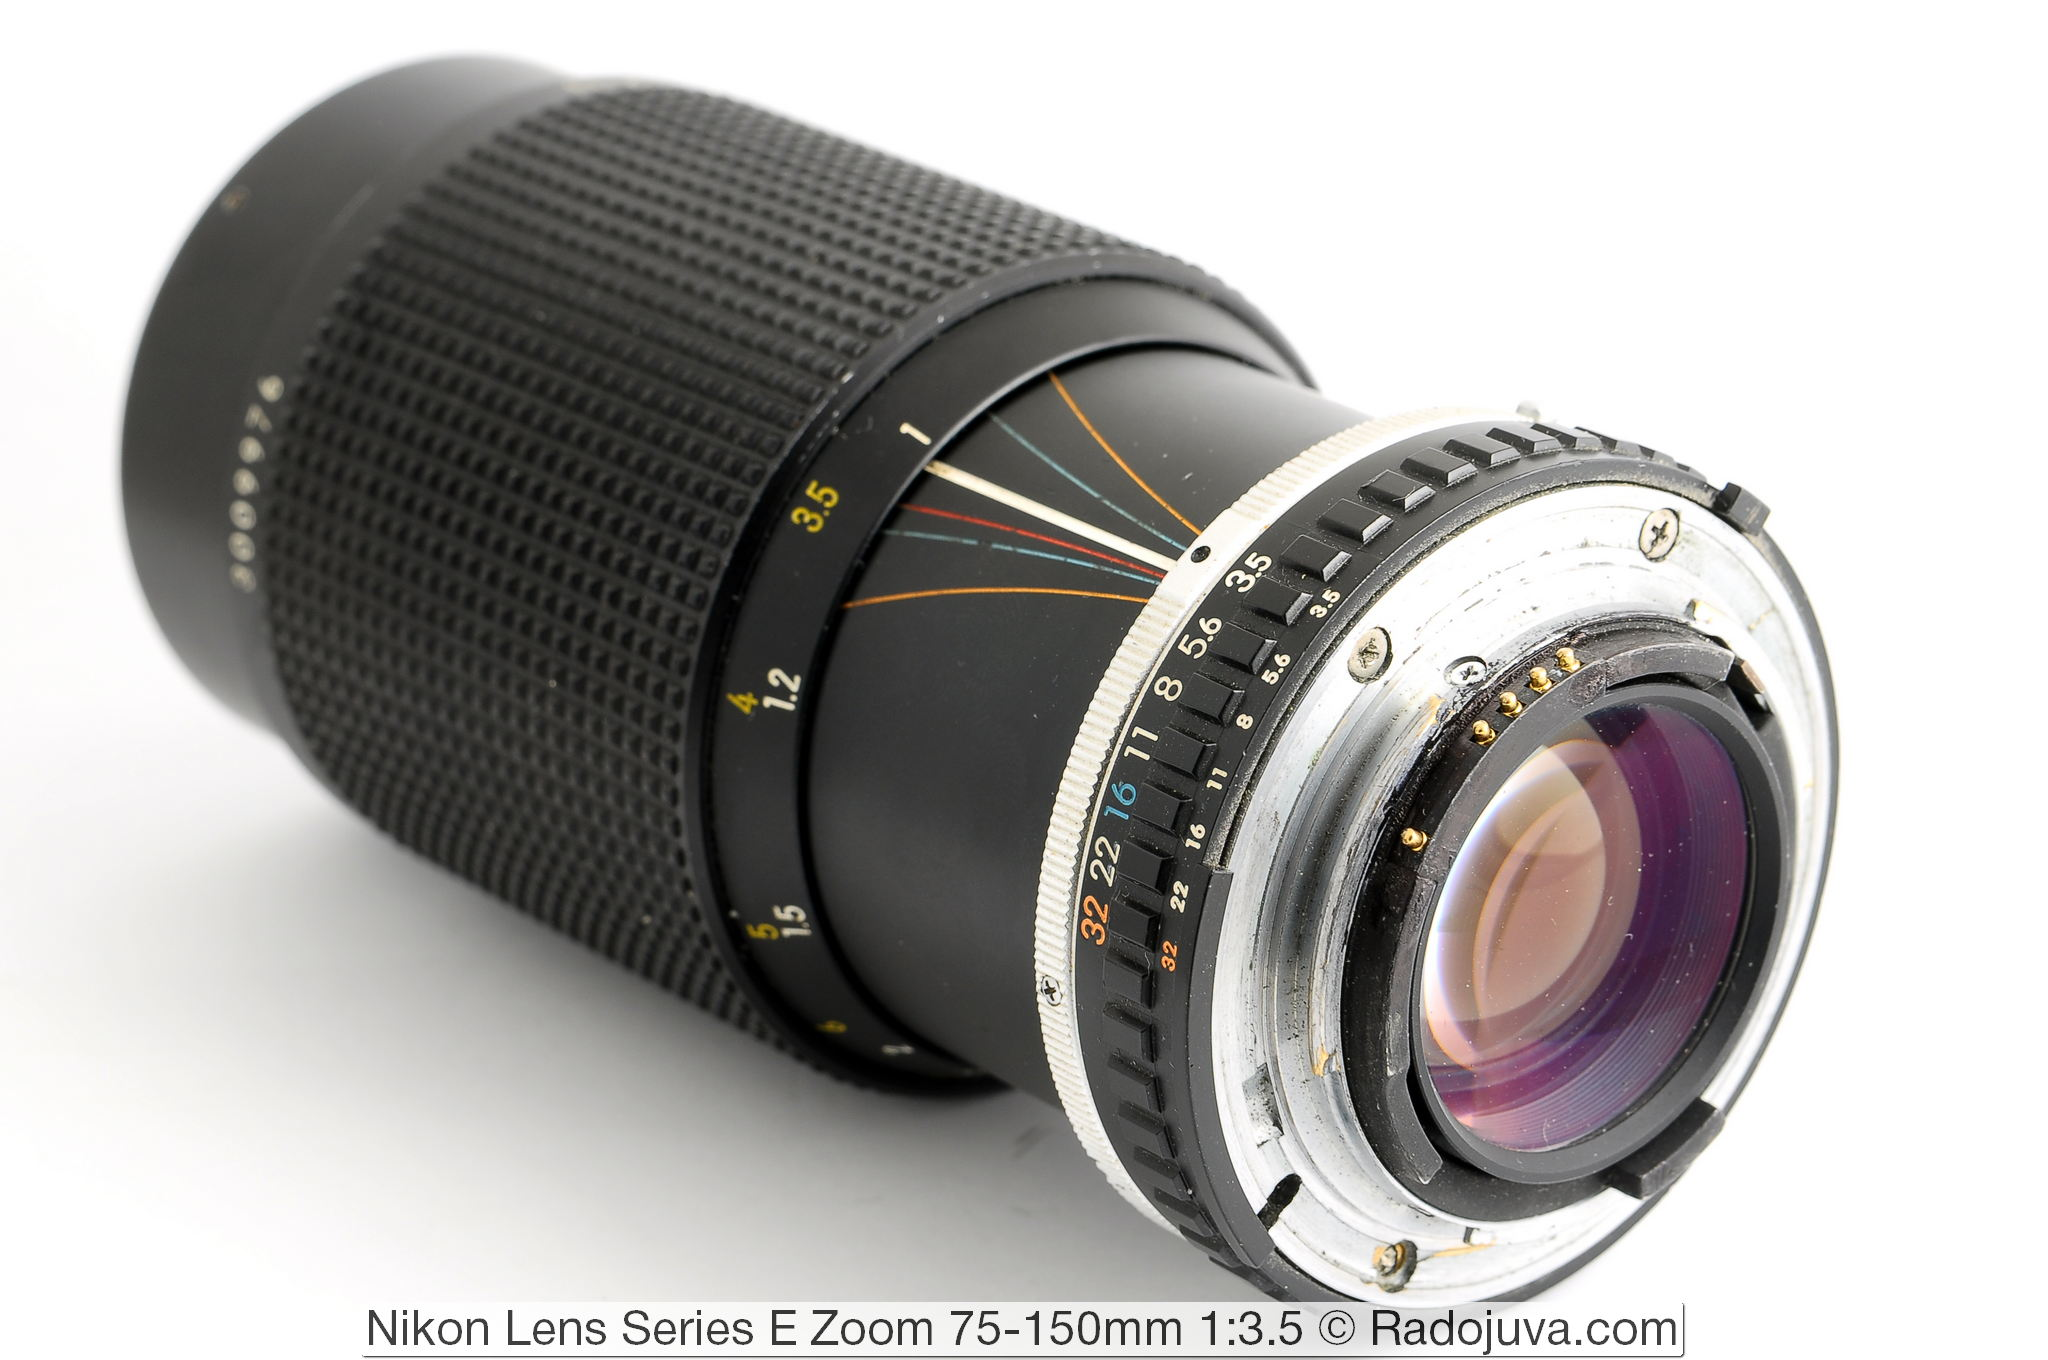 Nikon Lens Series E Zoom 75-150mm 1:3.5 (MKII)